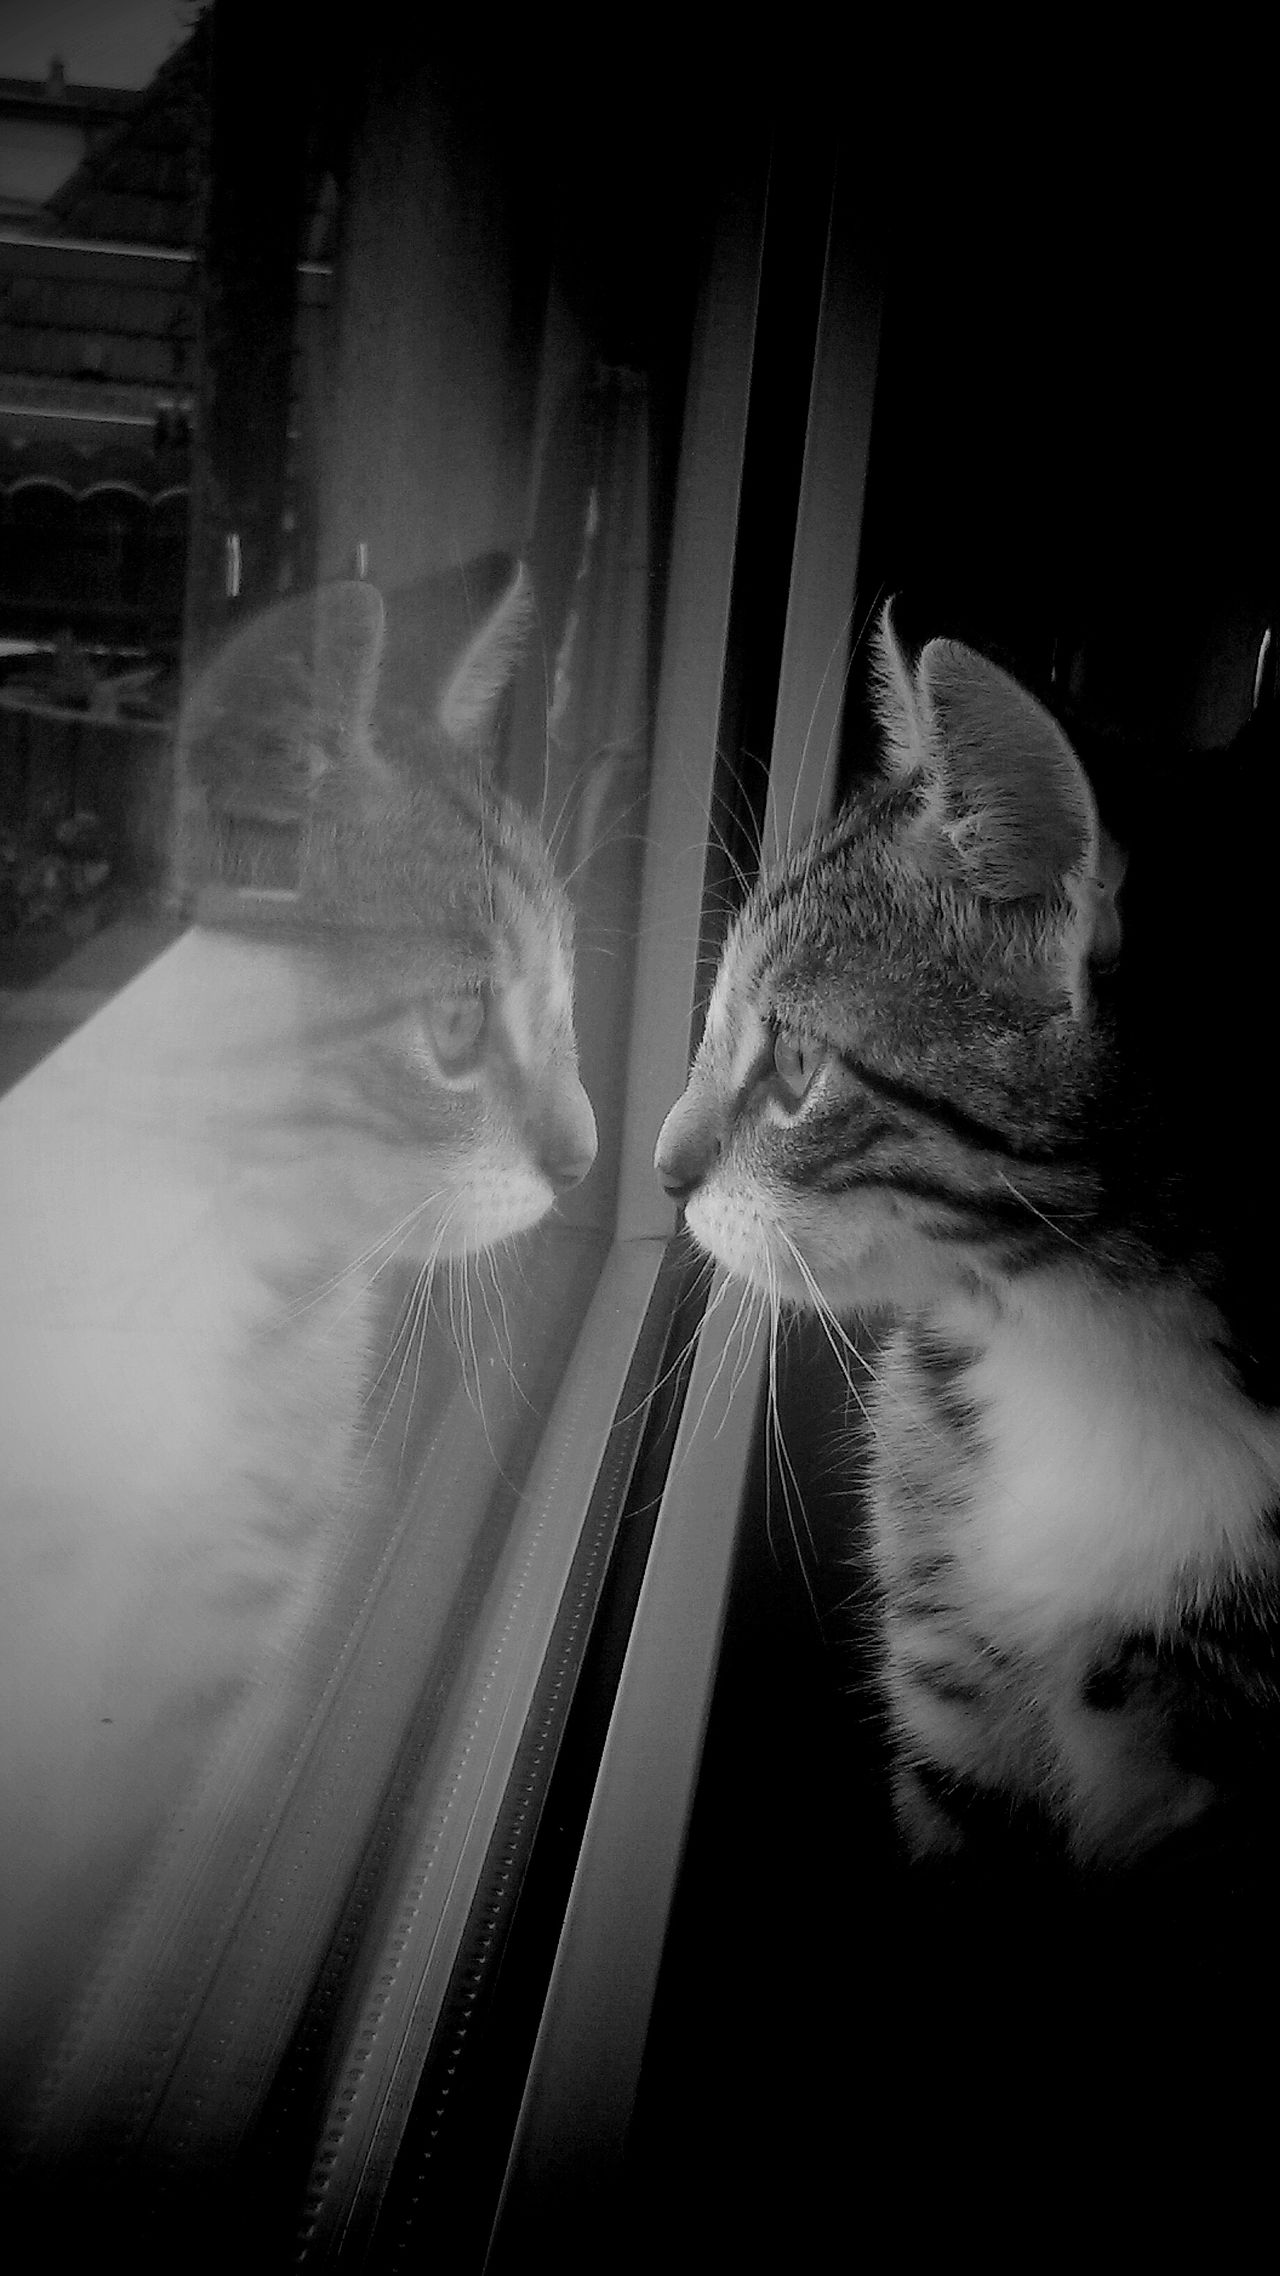 Cat Refelection - Monochrome Photography Black And White TakeoverContrast Dramatic Angles EyeEm Gallery Showcase October Creativity Animal Cats Of EyeEm Cat My Photos Adis Art EyeEm Best Shots Berlin, Germany  Fine Art Atmospheric Reflection EyeEm Best Edits Animal Photography Animal Love Coincidedence Photography Shadow Window Reflections Capture Berlin Finding New Frontiers Adapted To The City Lieblingsteil Miles Away Uniqueness The City Light